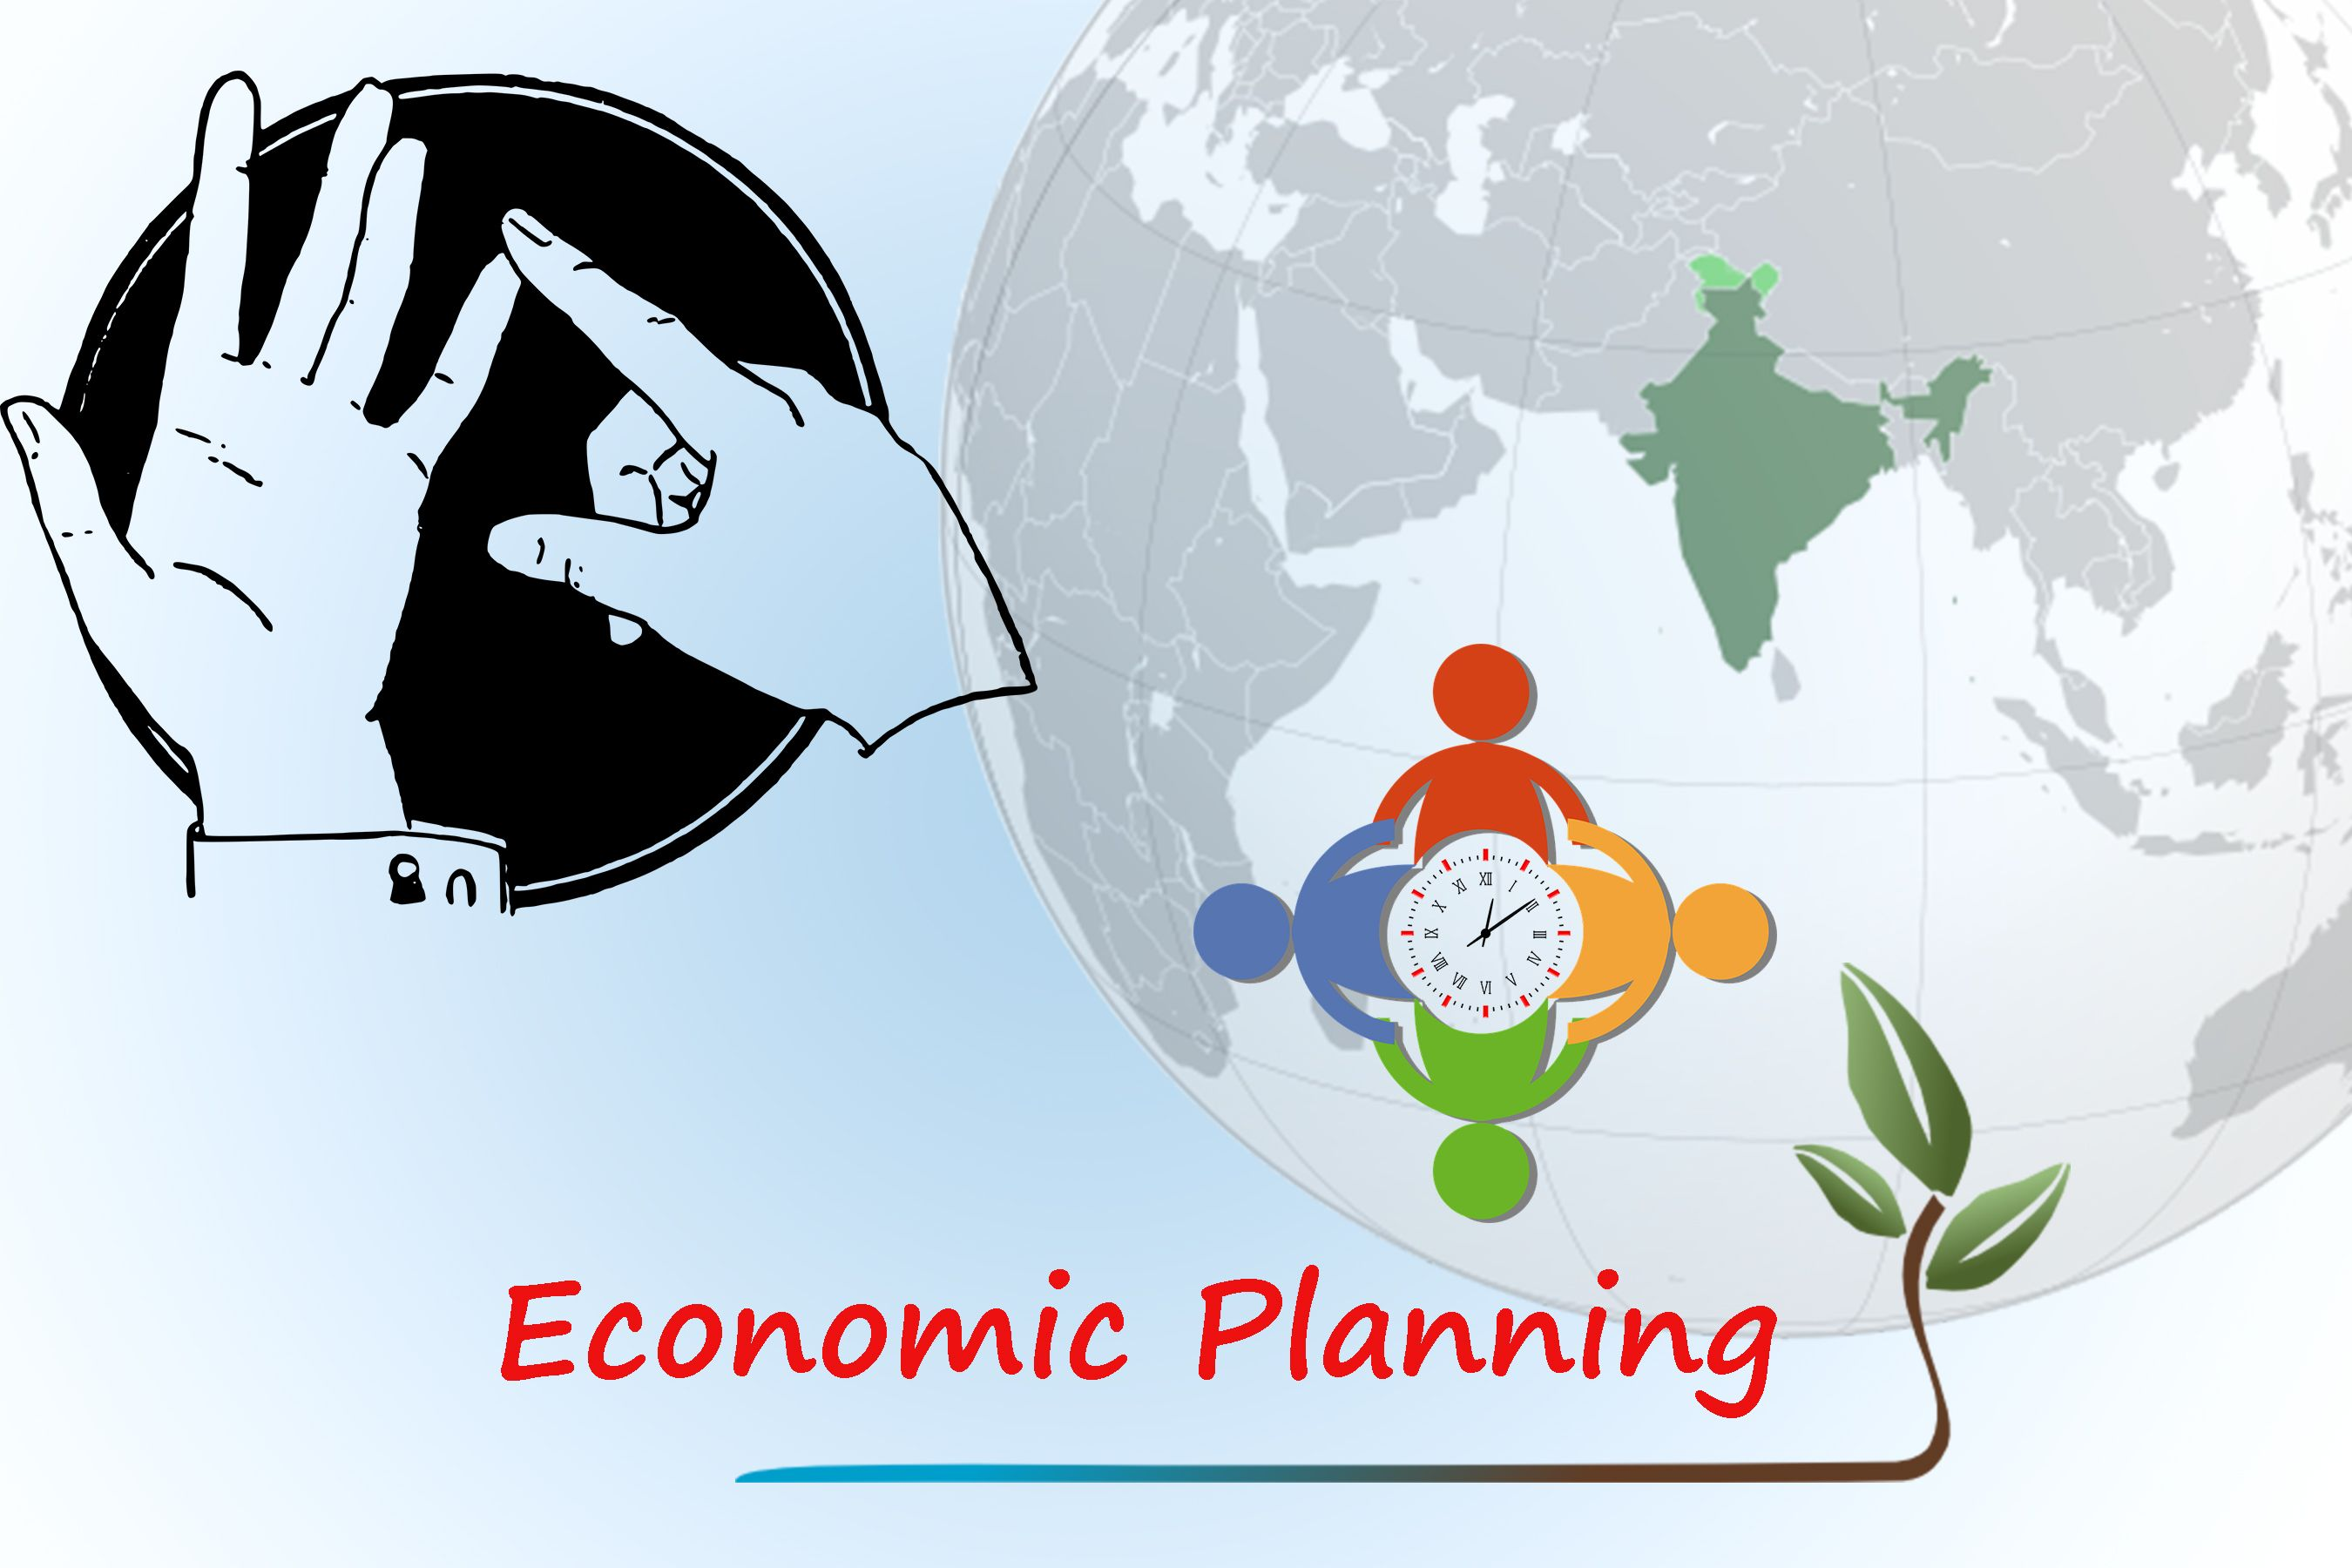 Economic Planning in India, Economics, Economic Planning in India Started After the Independence in 1947, History of Economic Planning in India, Importance of Economic Planning in India, Characteristics of Economic Planning in India, Objectives of Economic Planning in India, Latest News on Economic Planning in India, Types of Economic Planning in India, Five Year Economic Planning in India, Steps Involved in Economic Planning in India, mixed economy, Economic Planning models